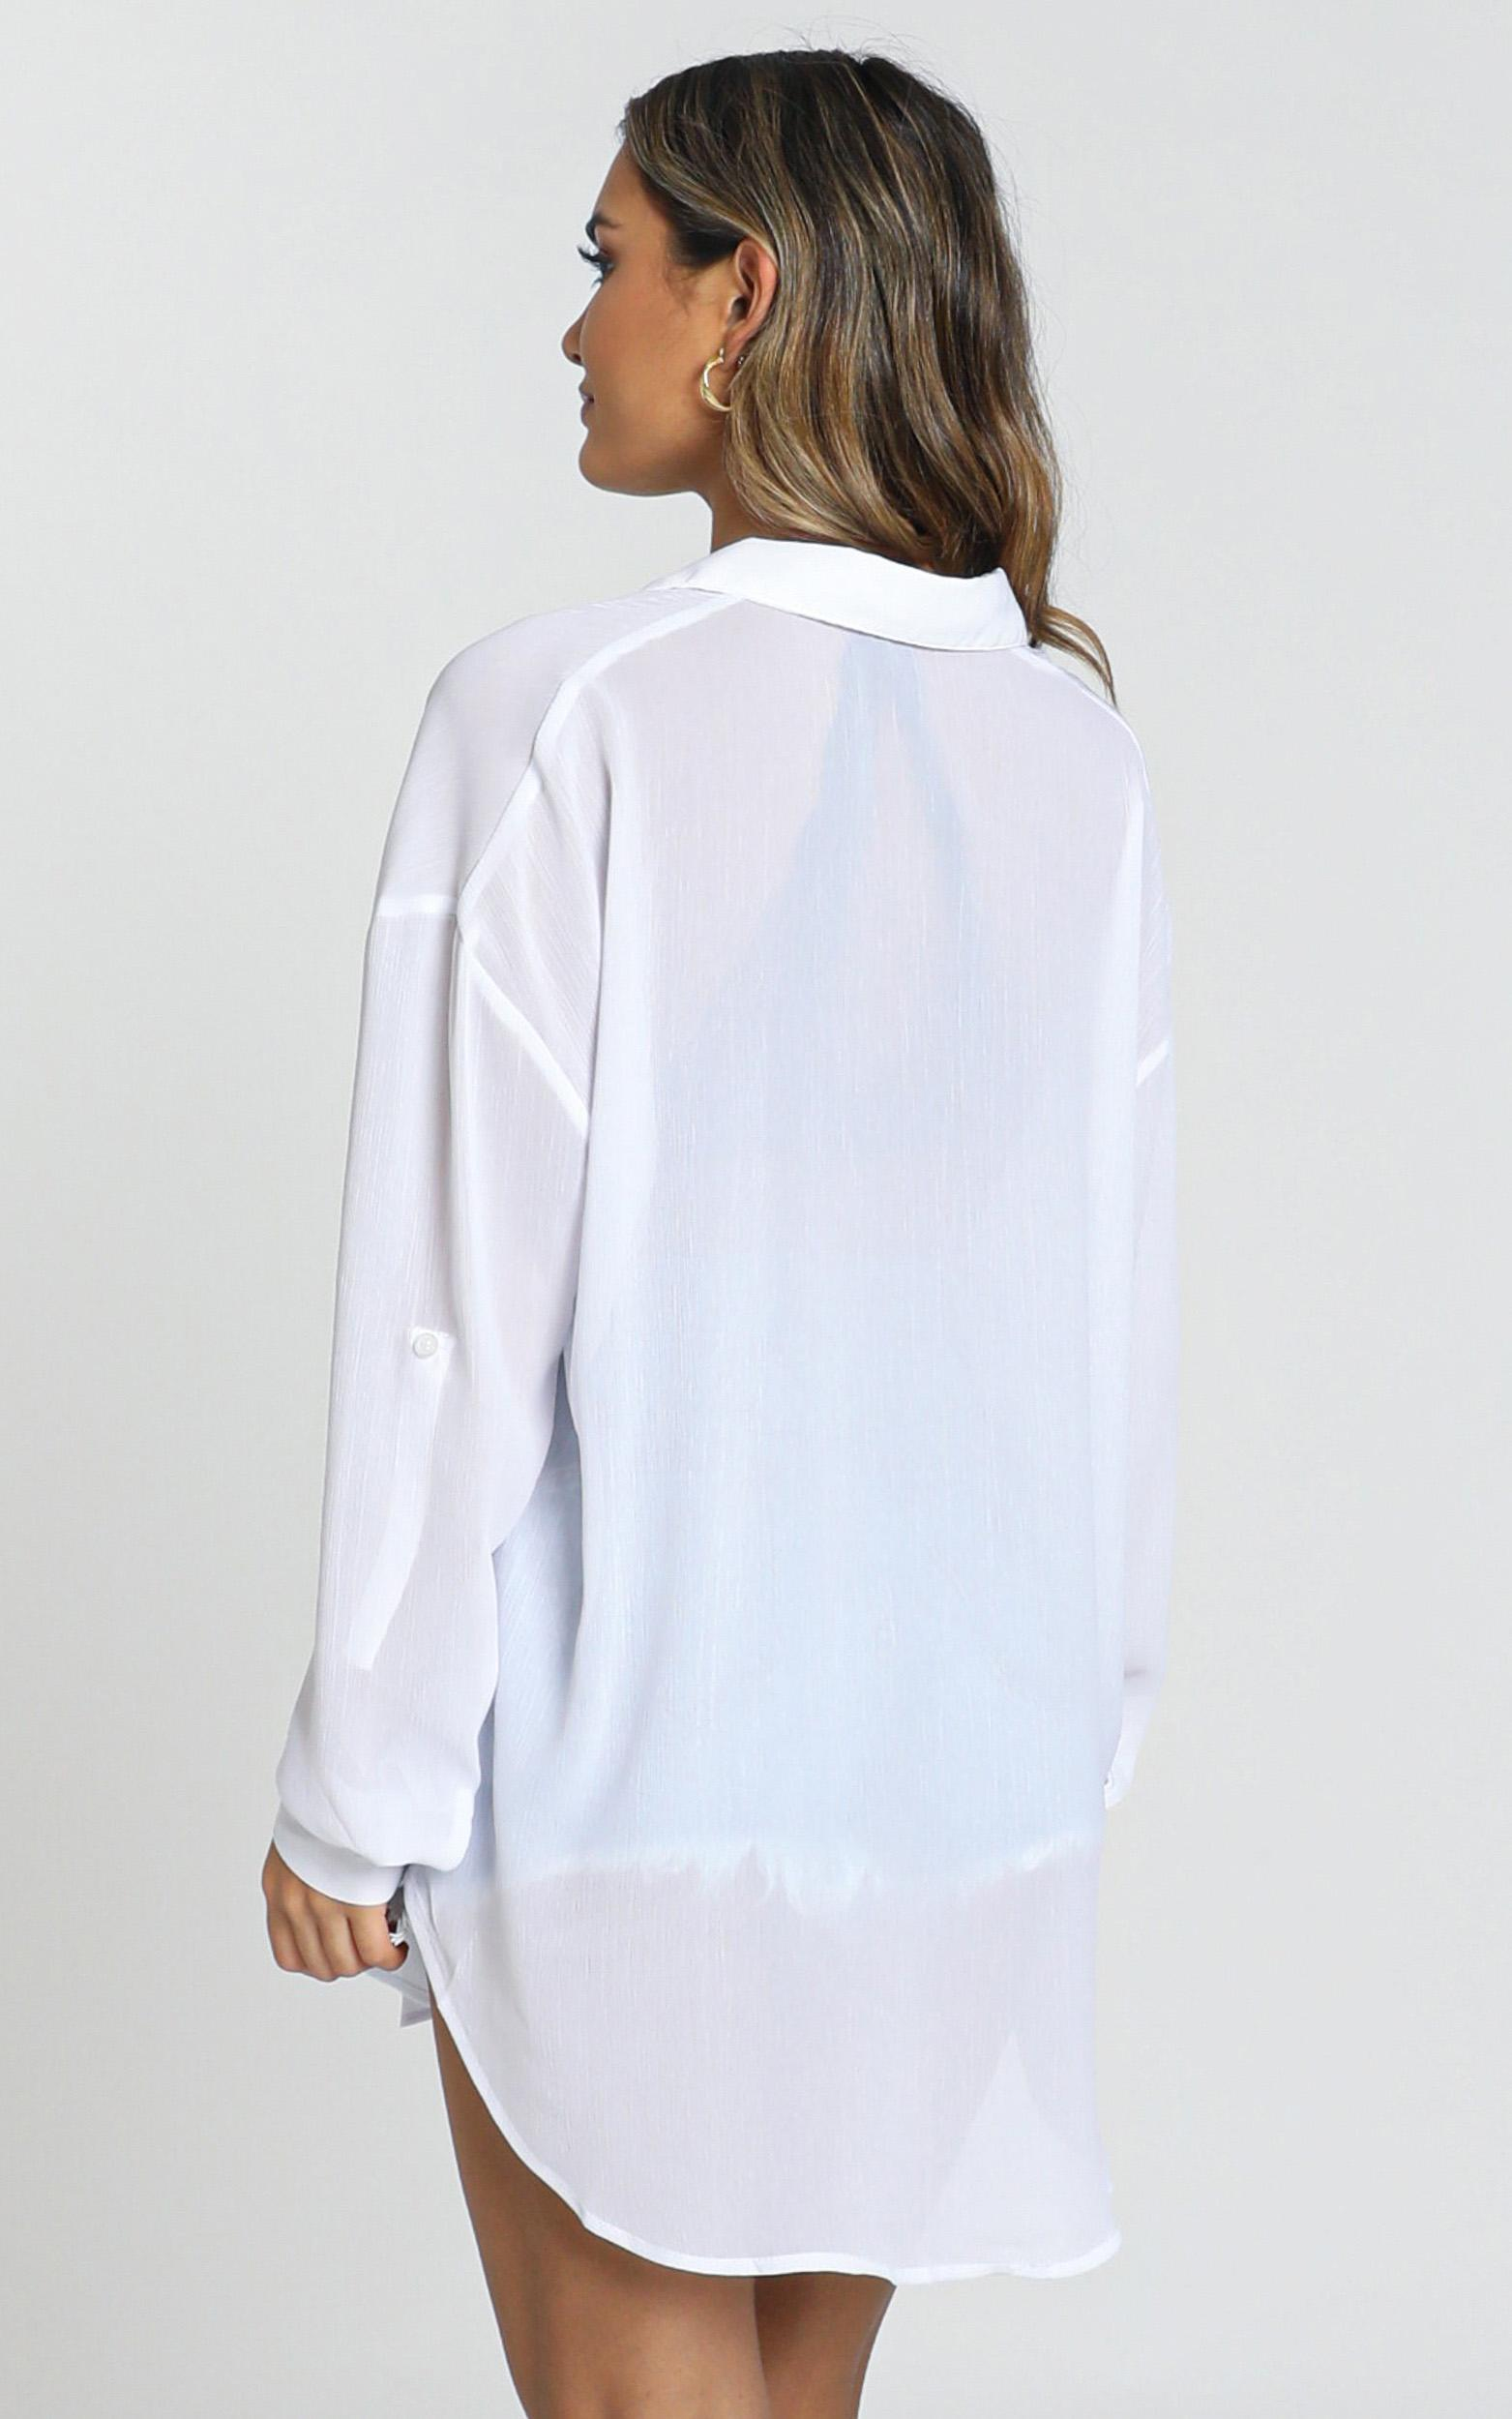 Morning Call shirt in white - 20 (XXXXL), White, hi-res image number null